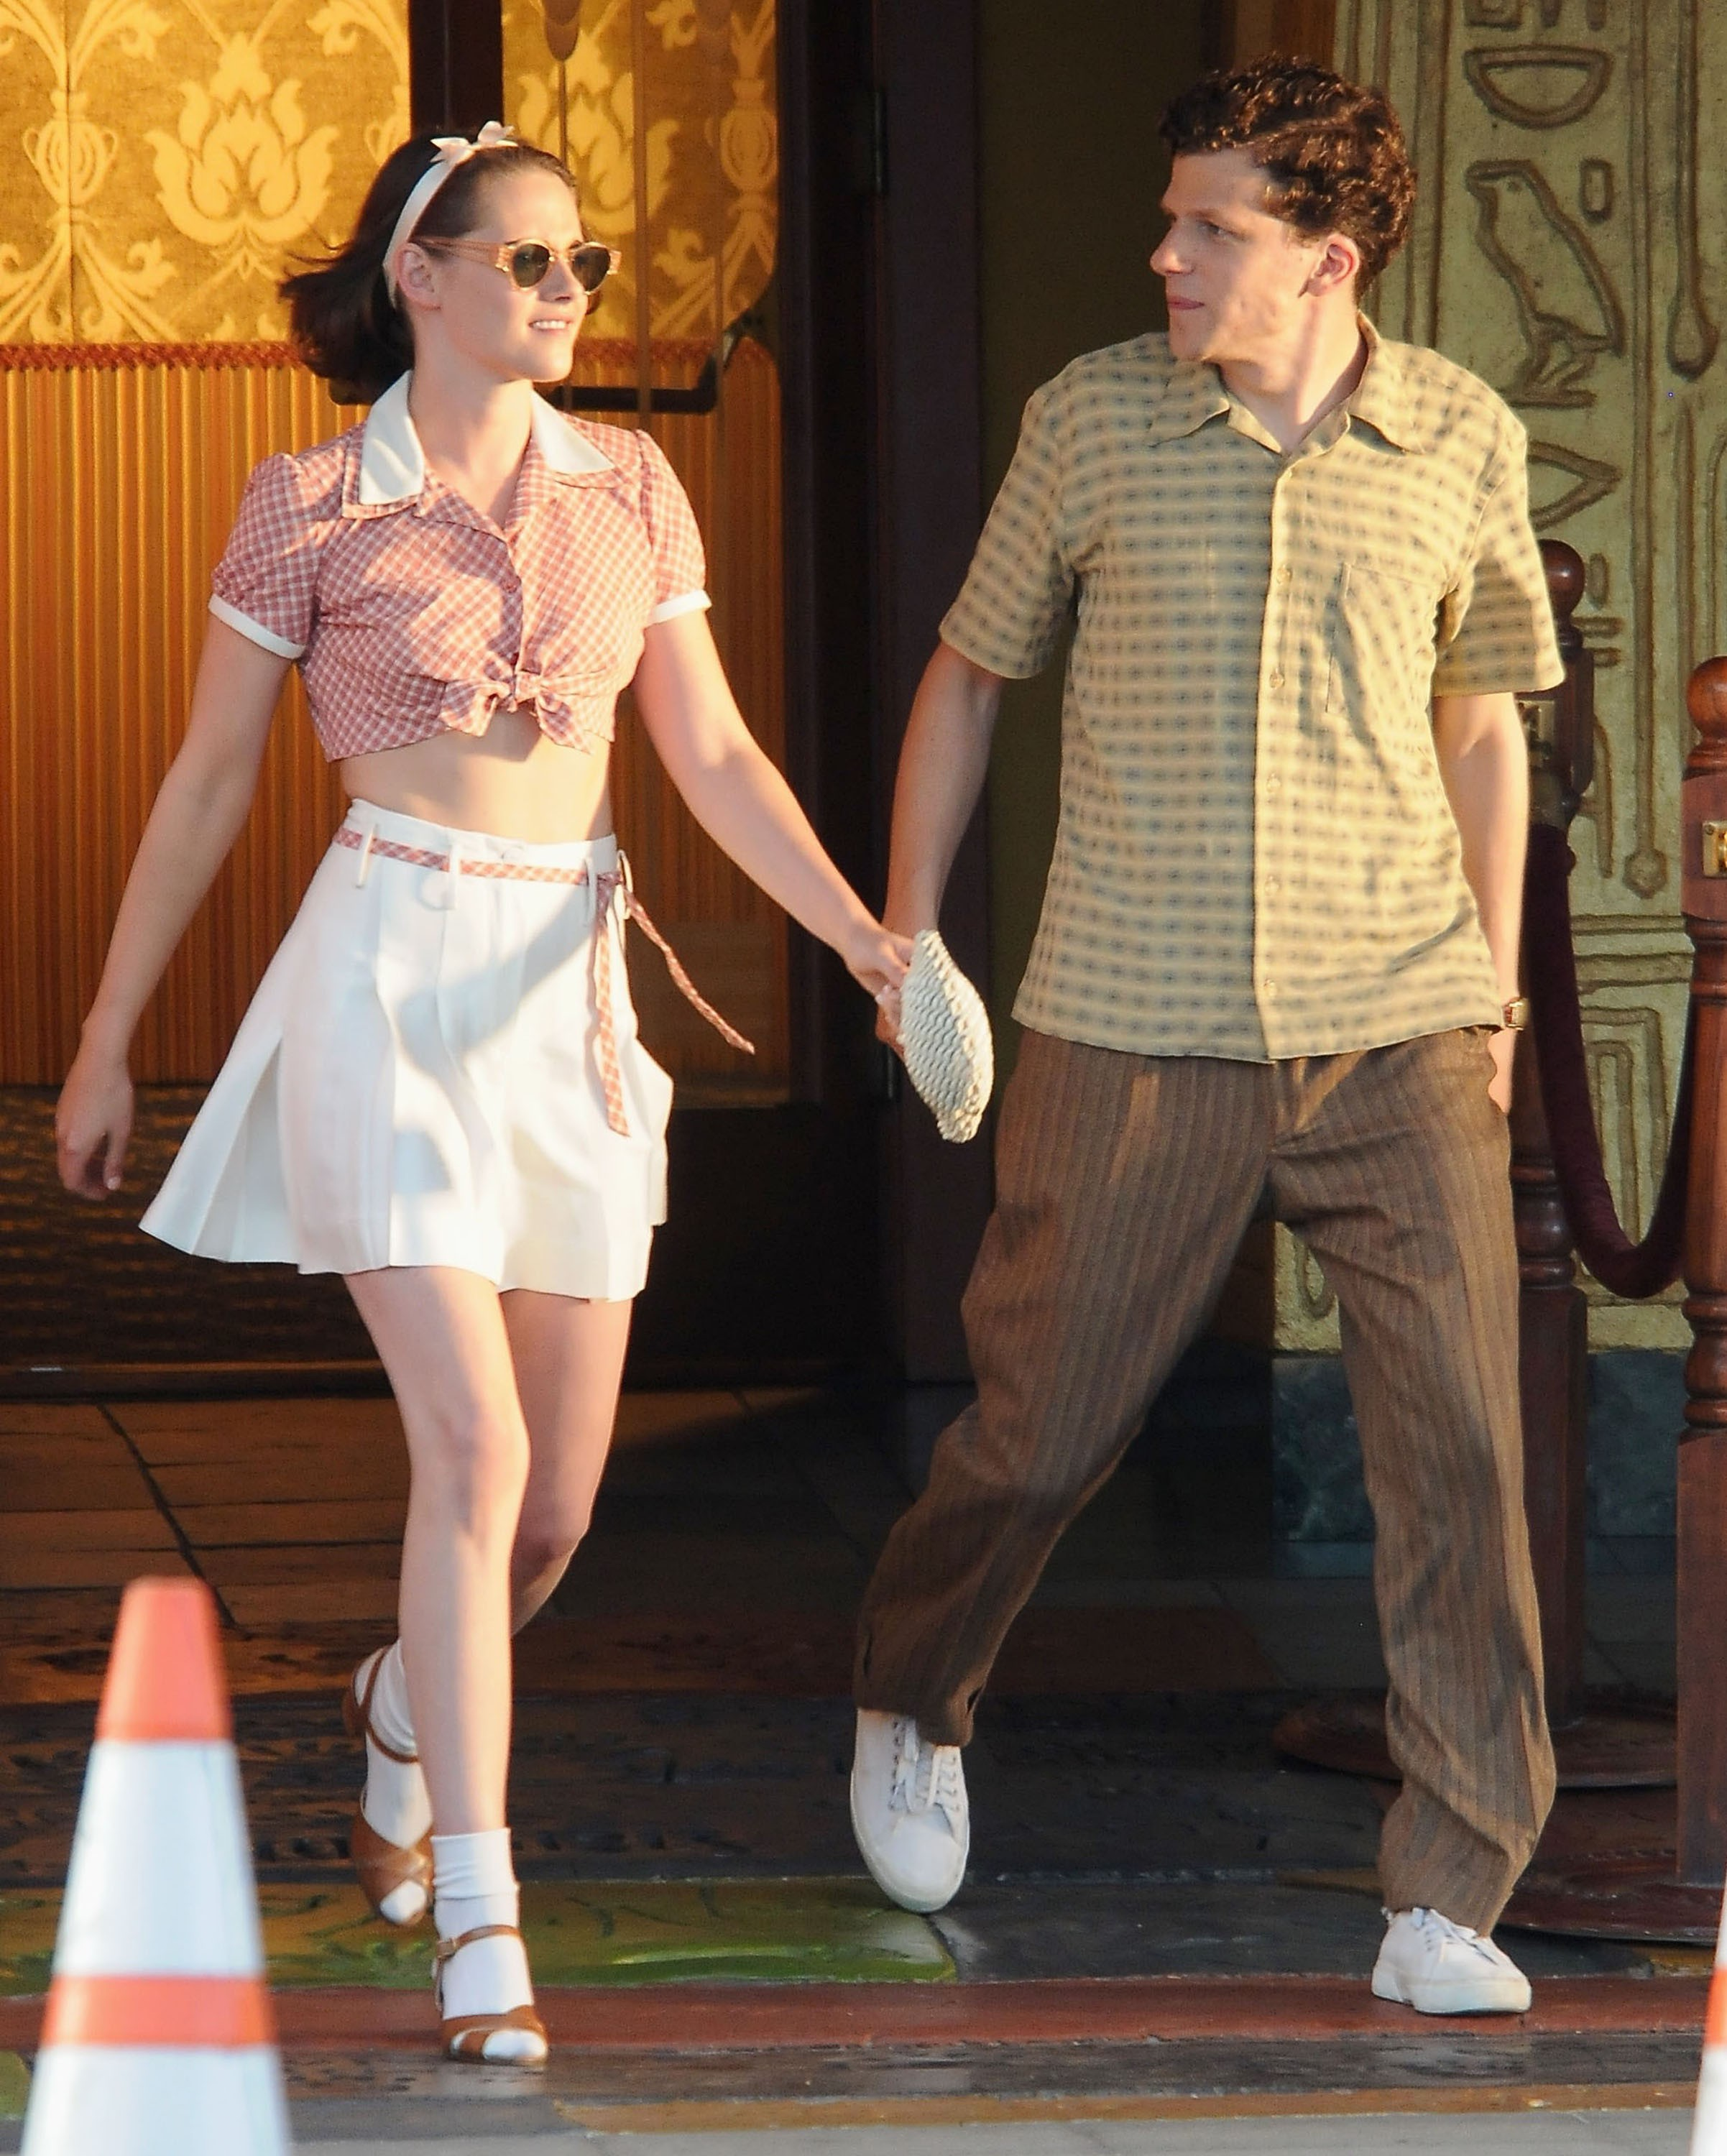 kristen-stewart-jesse-eisenberg-film-woody-allen-cafe-society-32916-25-compressed